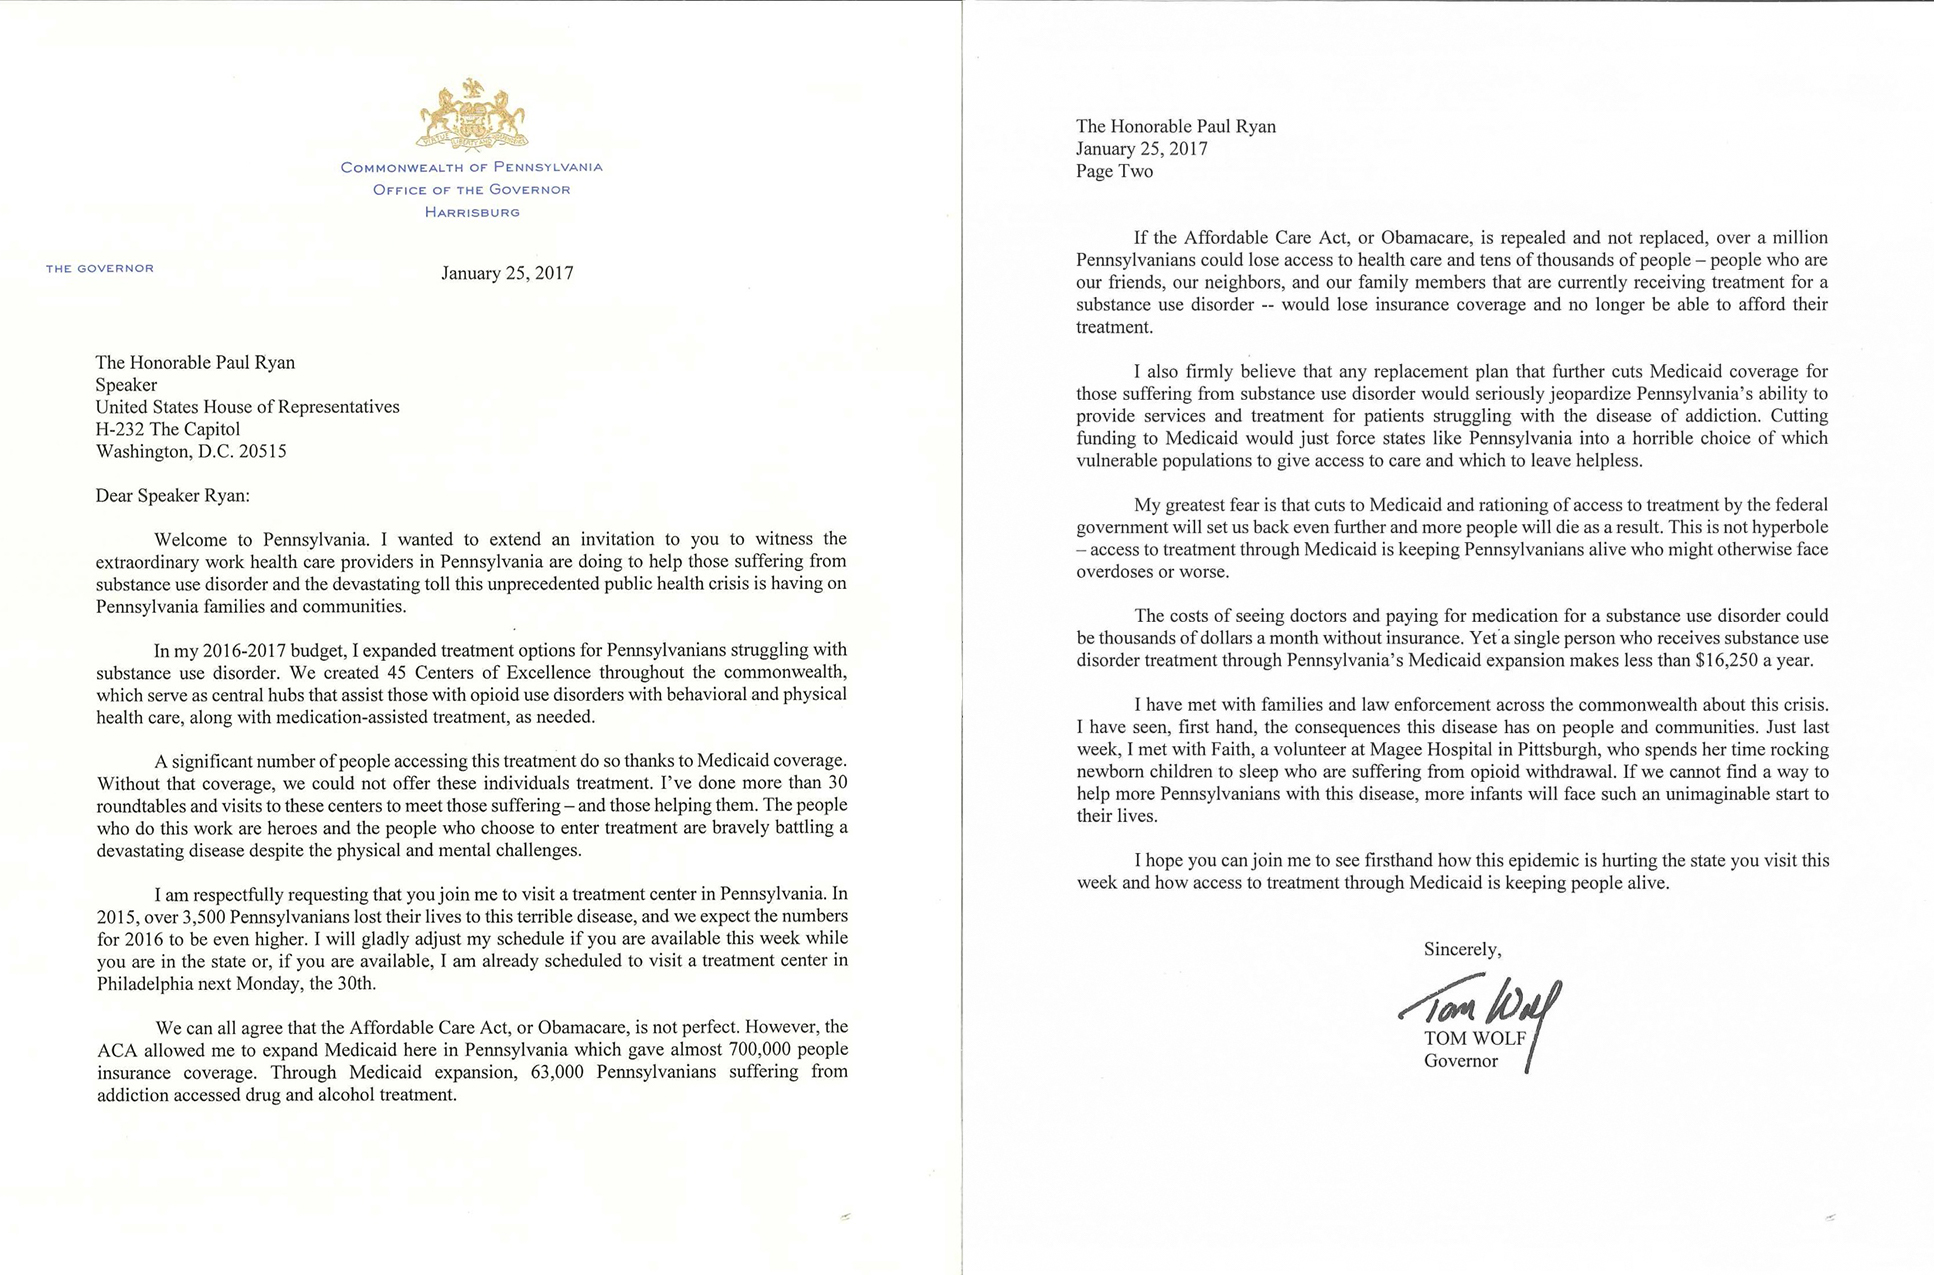 Wolf emphasizes impact of aca repeal on opioid epidemic image of the letter governor wolf sent to speaker ryan xflitez Gallery